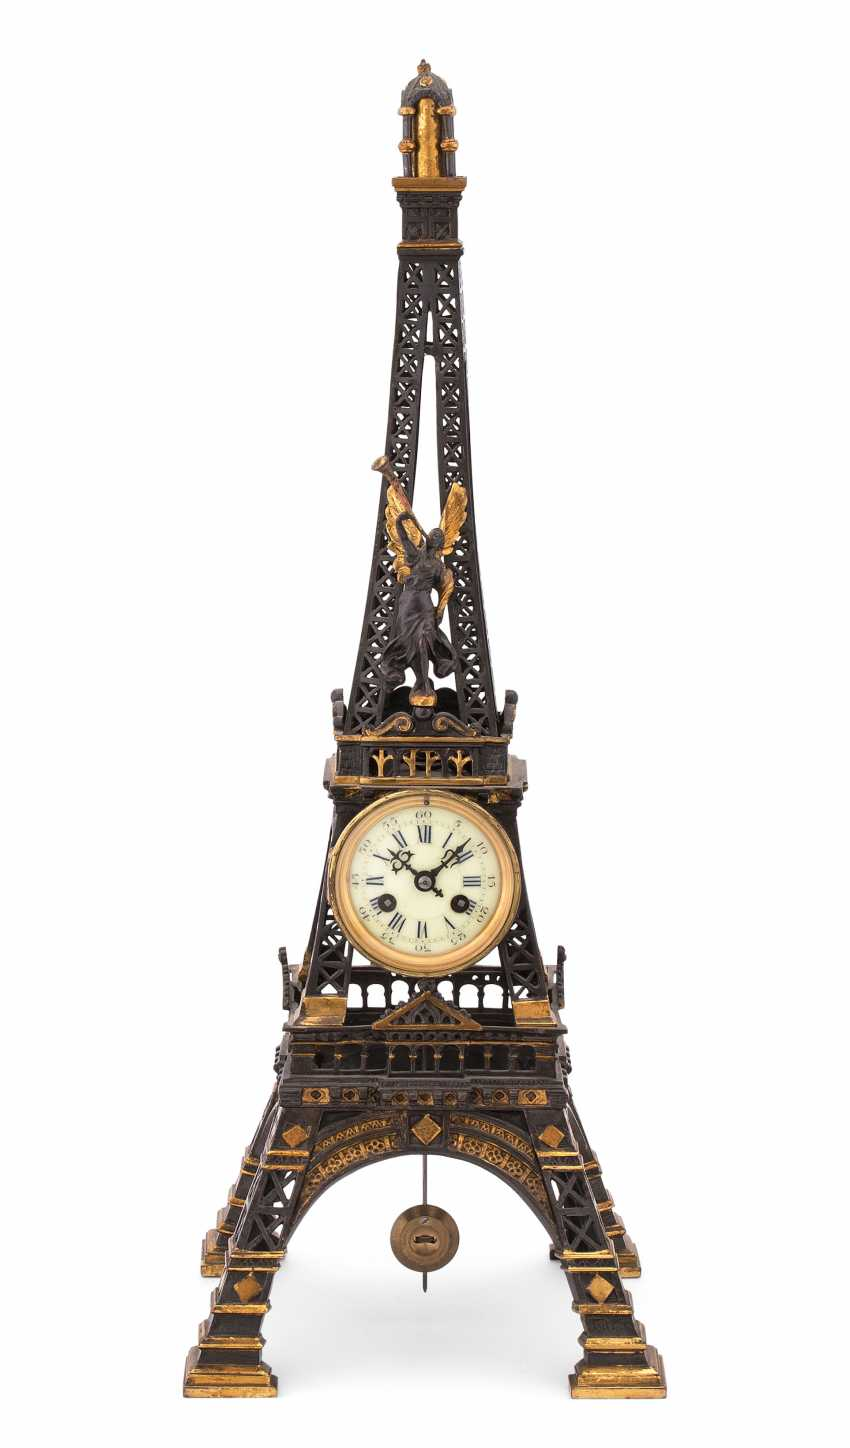 Horloge De Table Tour Eiffel - photo 1